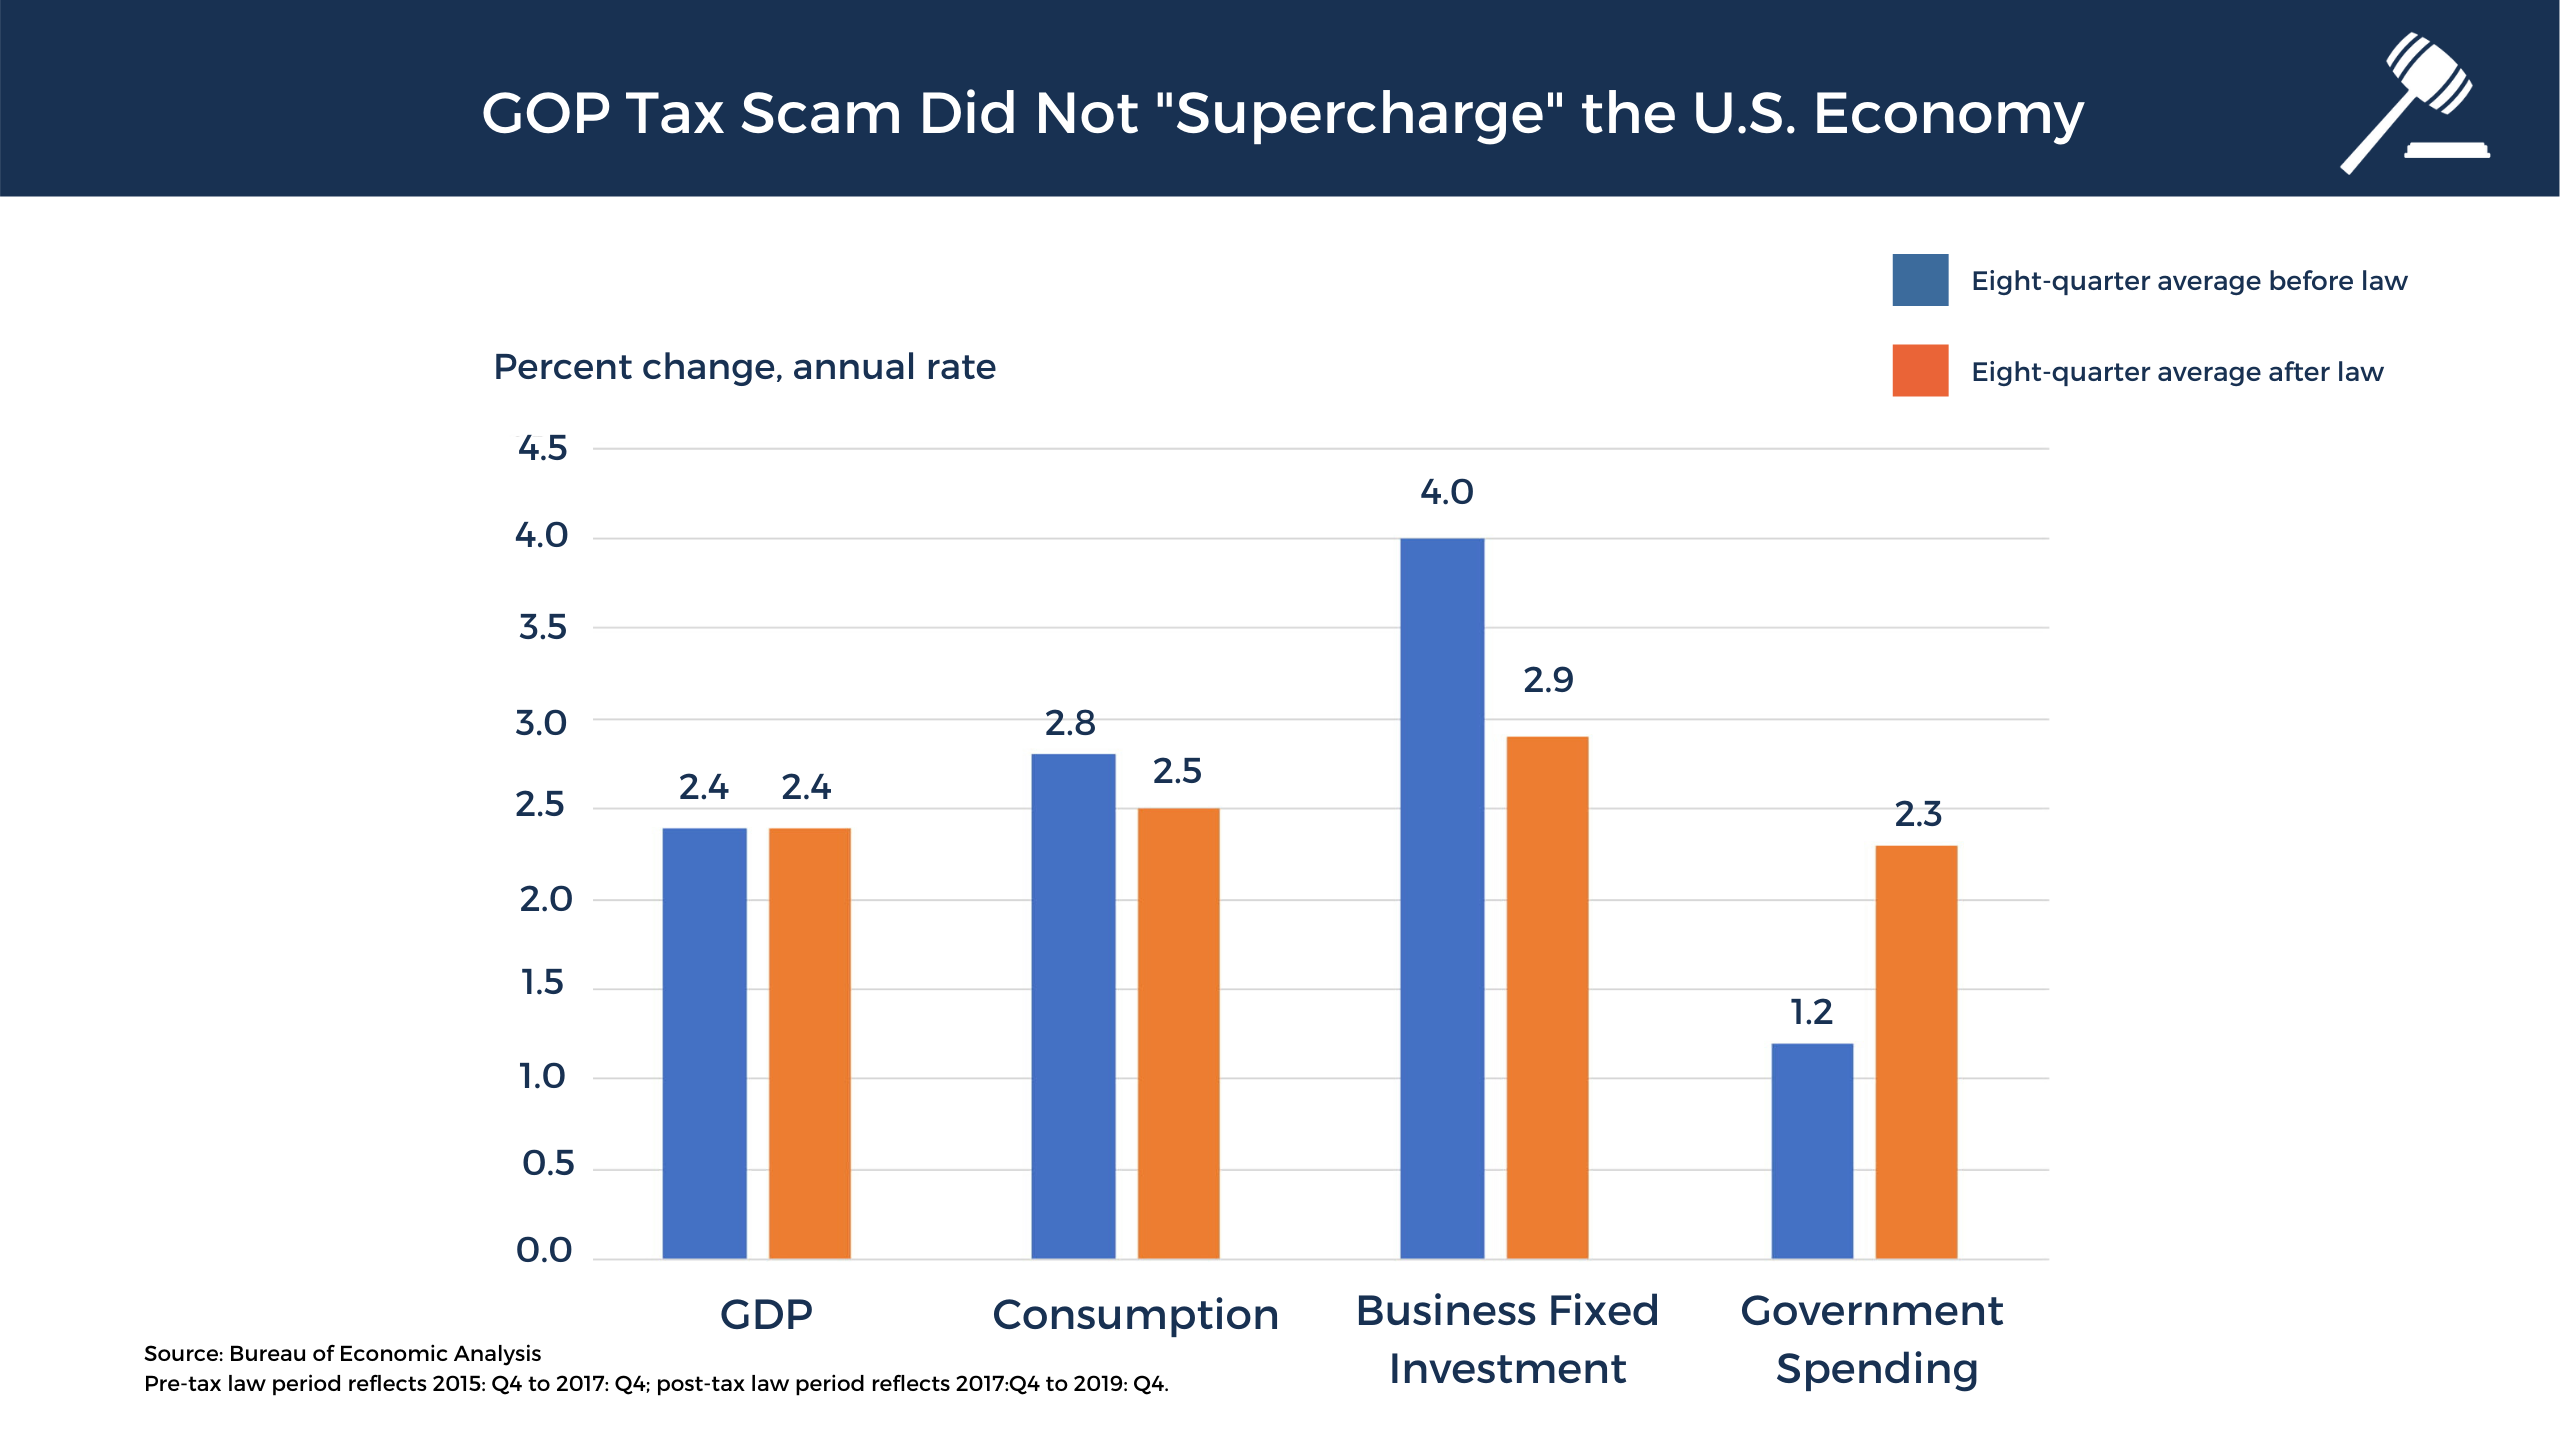 The #GOPTaxScam did not supercharge the economy